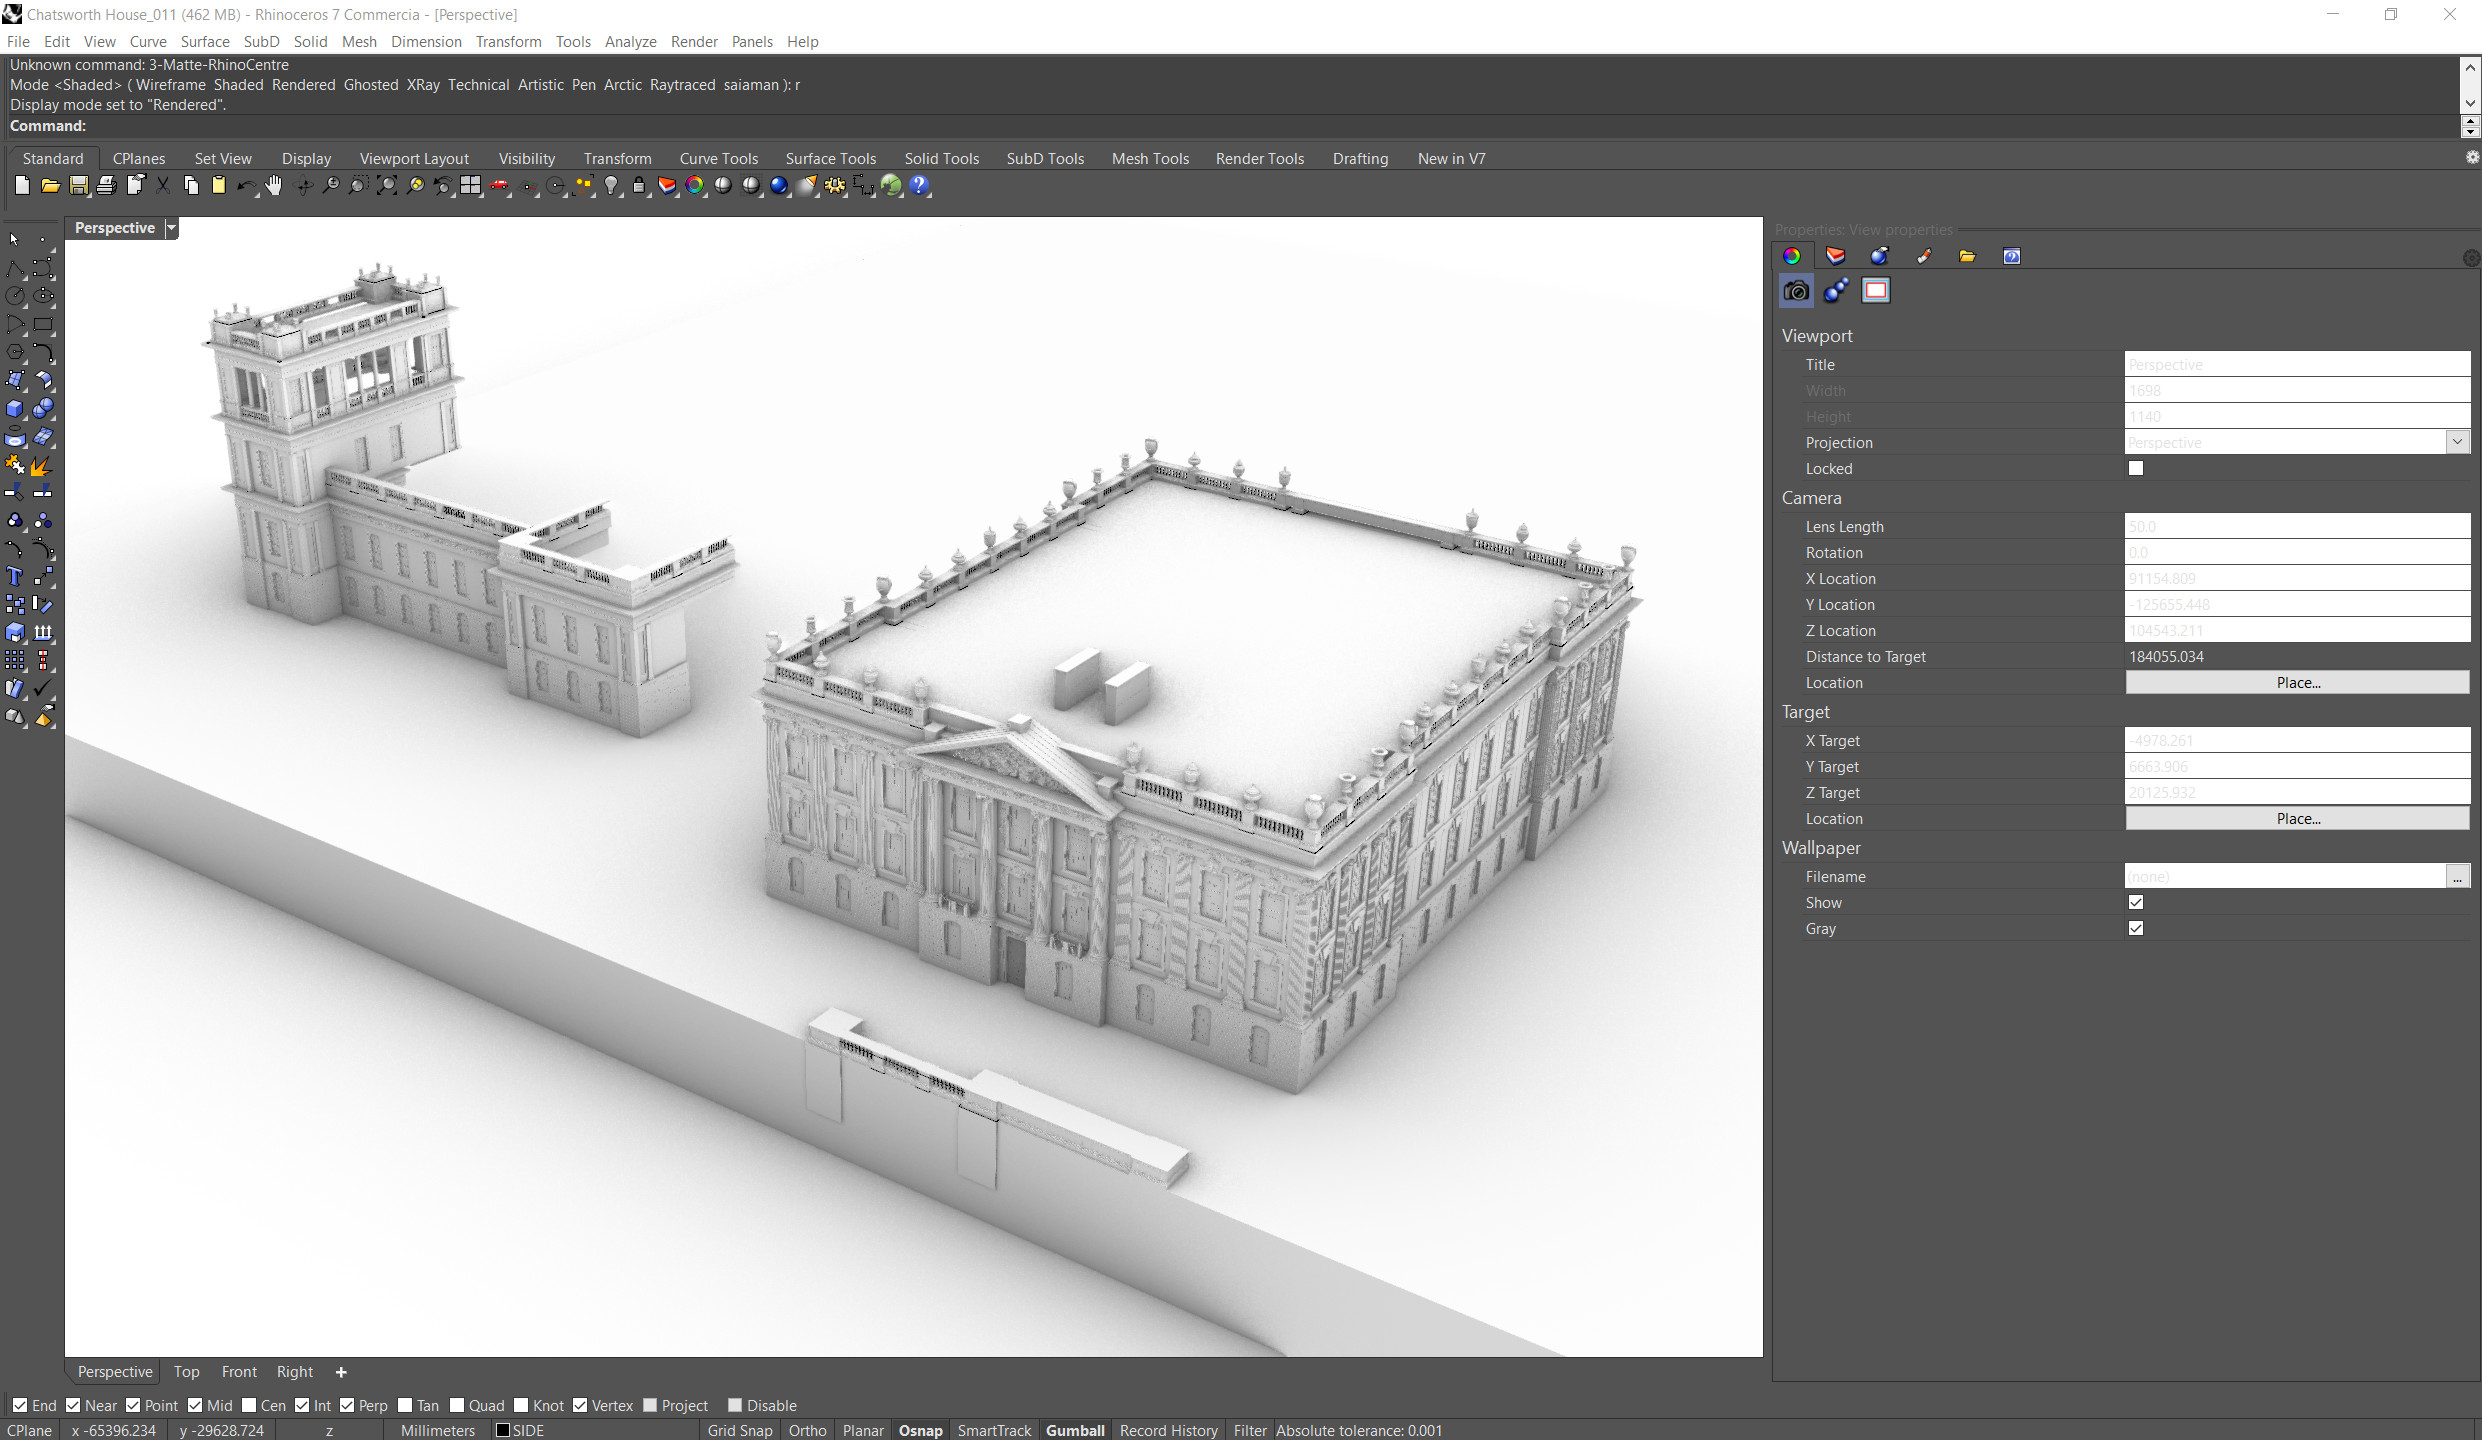 WIP (Rhino) - Overiew of Architectural Assets